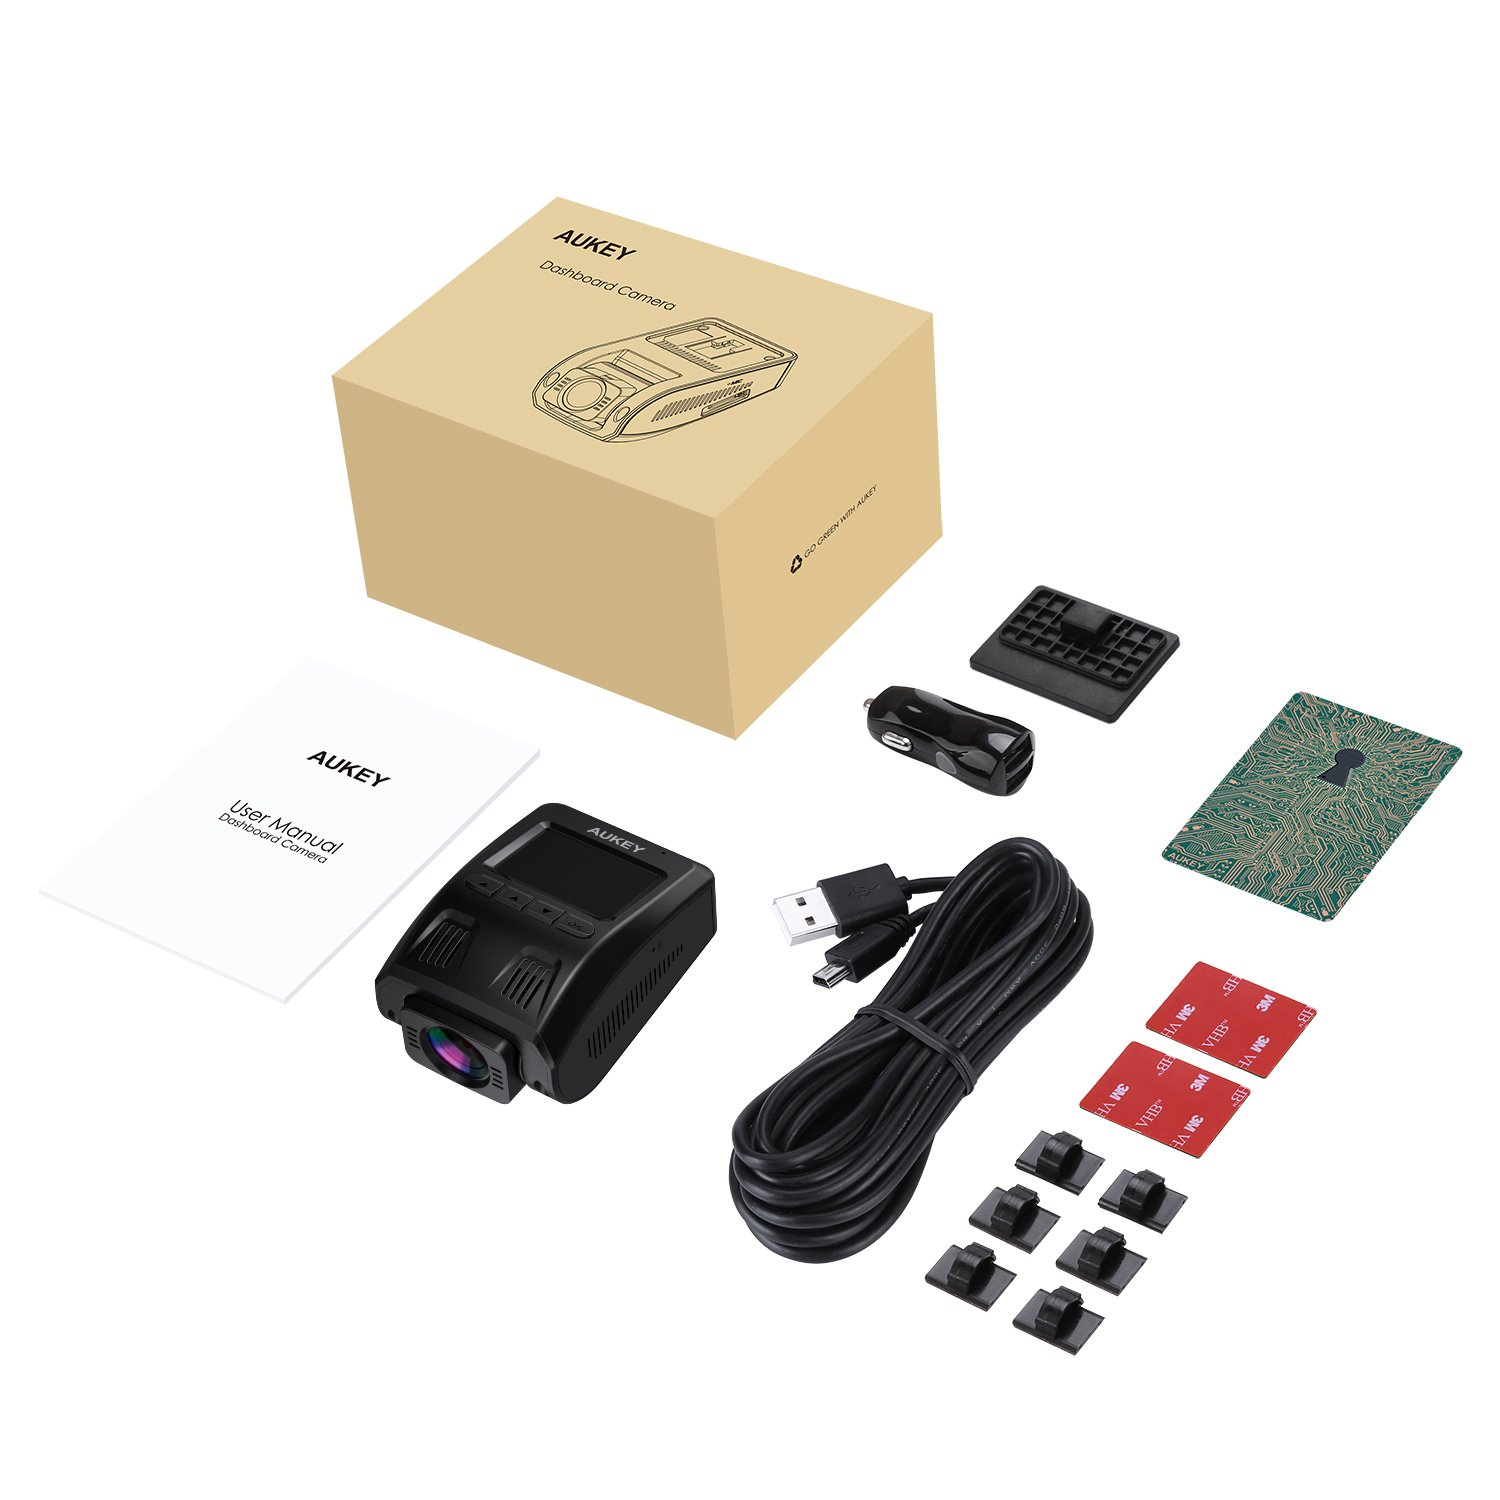 AUKEY-Dash-Cam-Dashboard-Camera-Recorder-with-Full-HD-1080P-6-Lane-170-Wide-Angle-Lens-Supercapacitor-G-Sensor-and-Clear-Nighttime-Recording